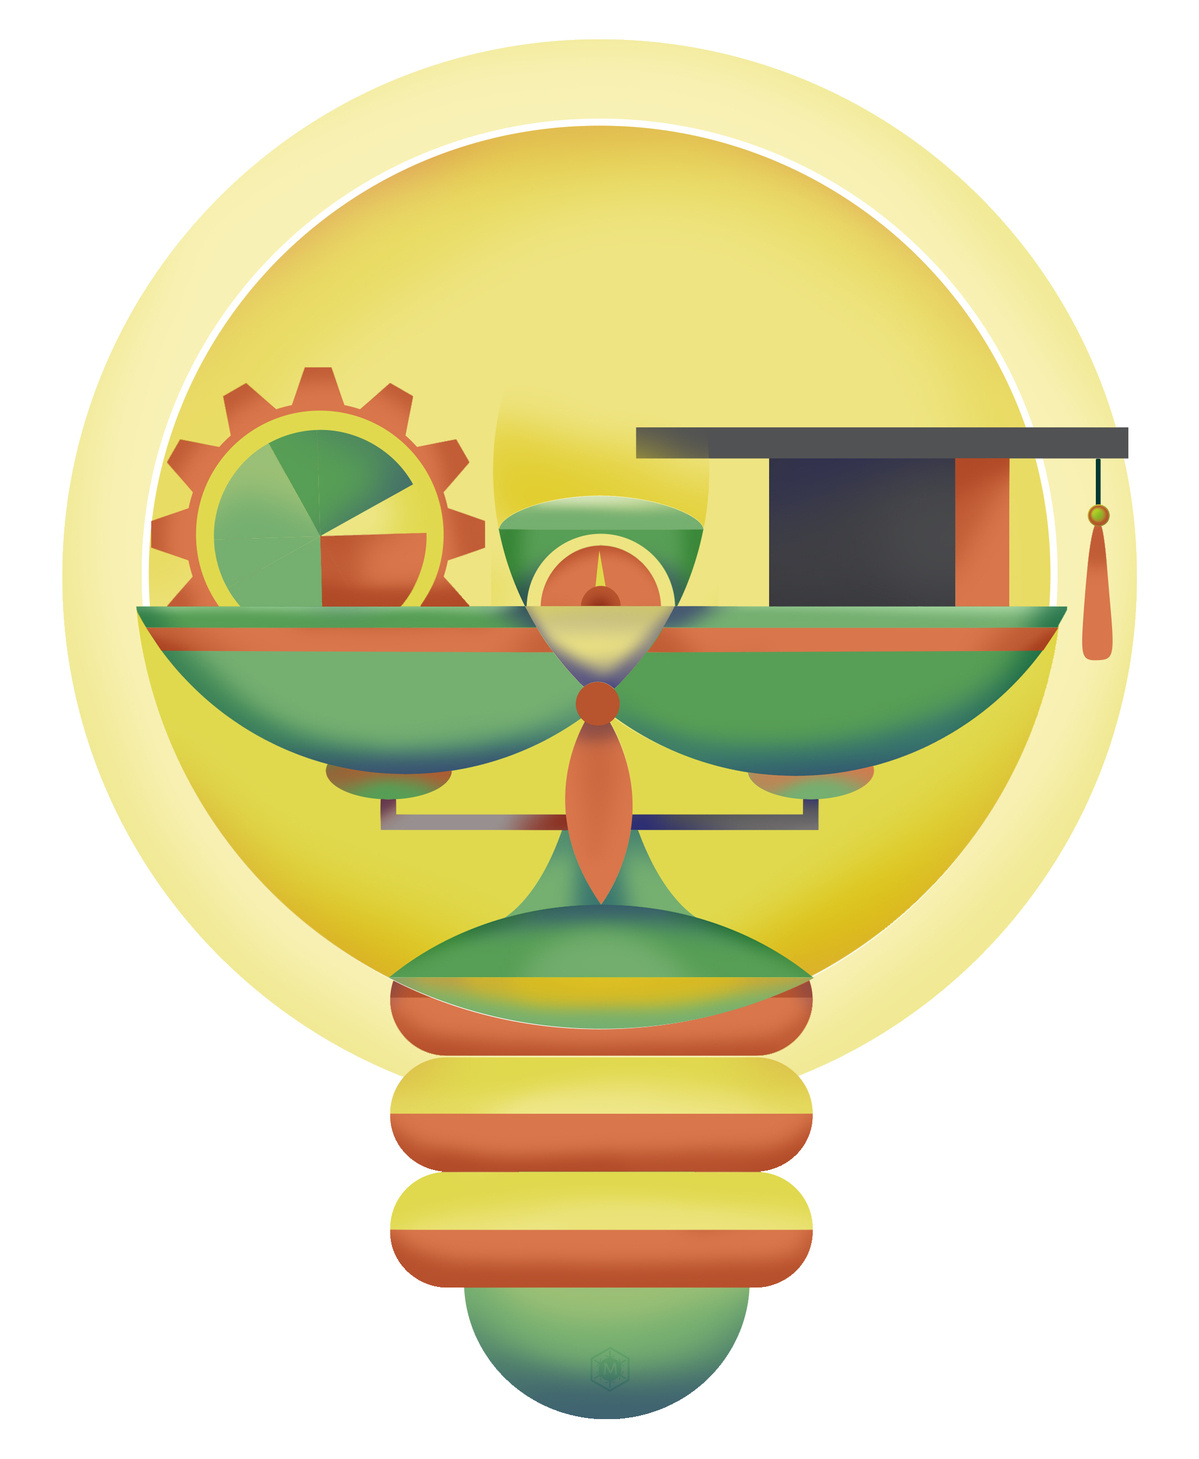 Education the basis of building a modern society